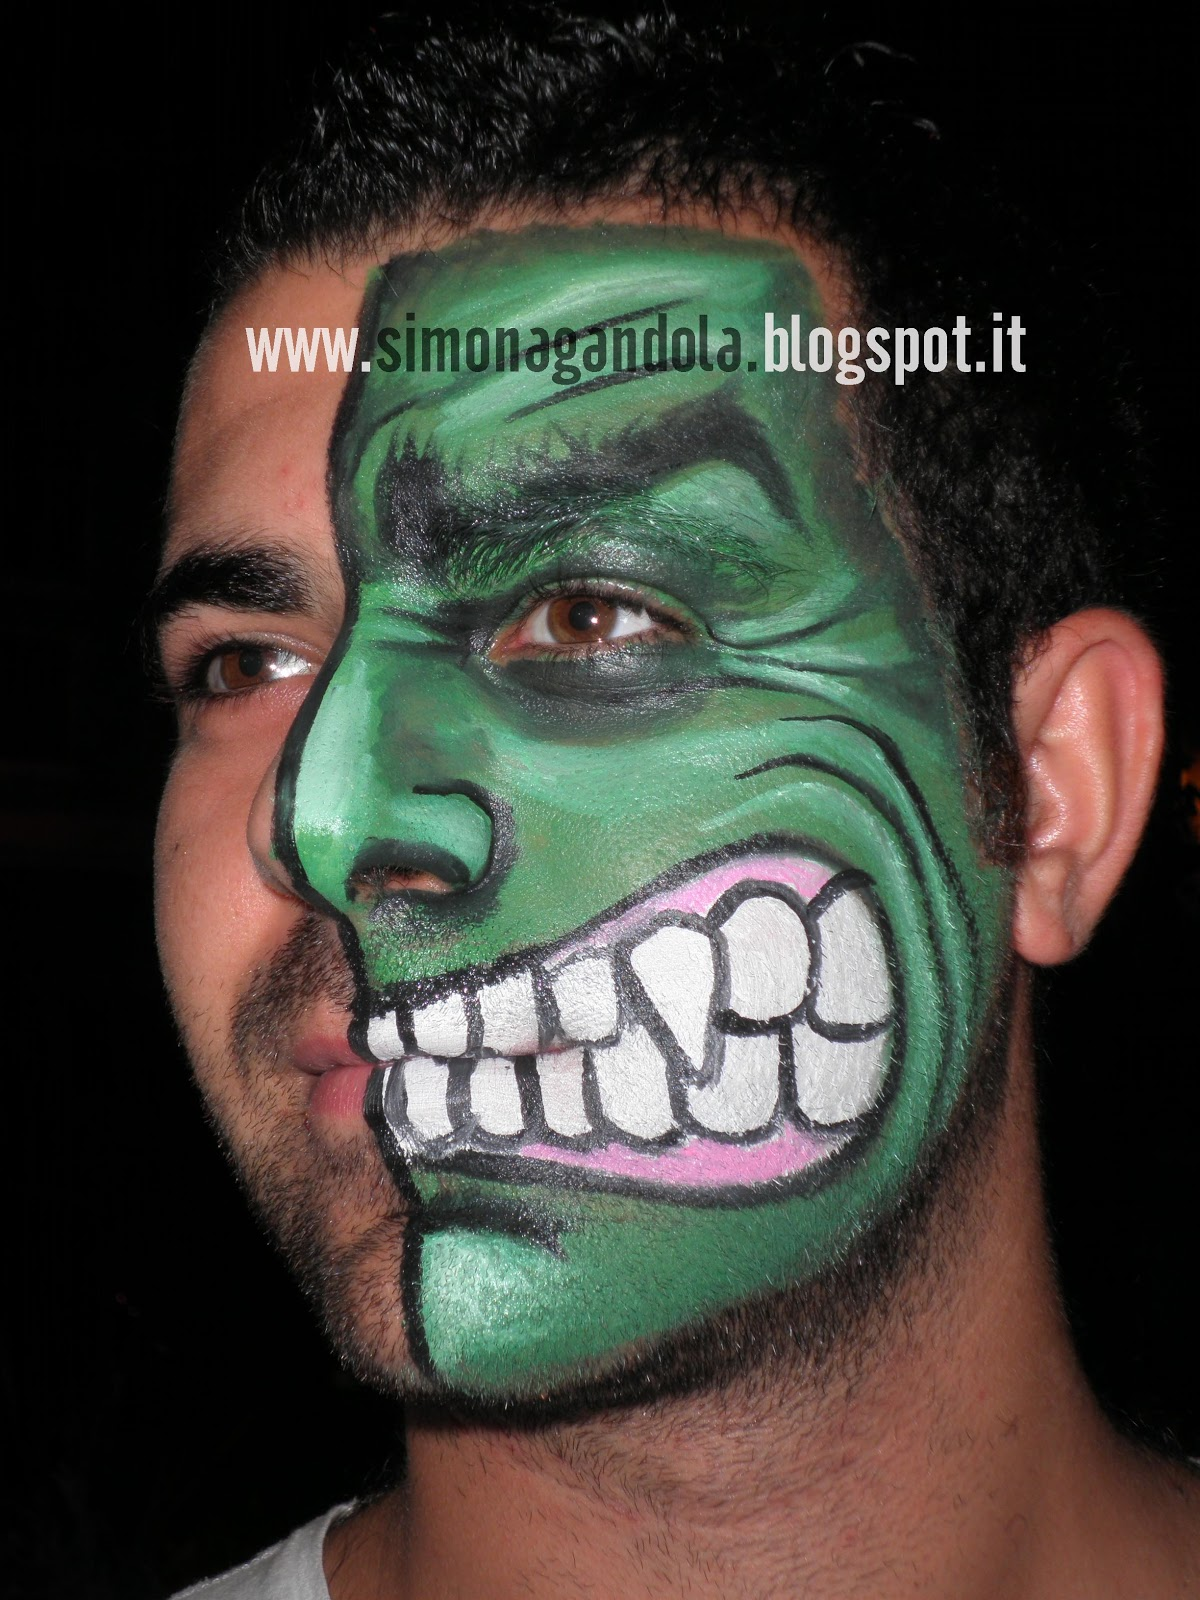 Green lantern mask face paint - photo#26